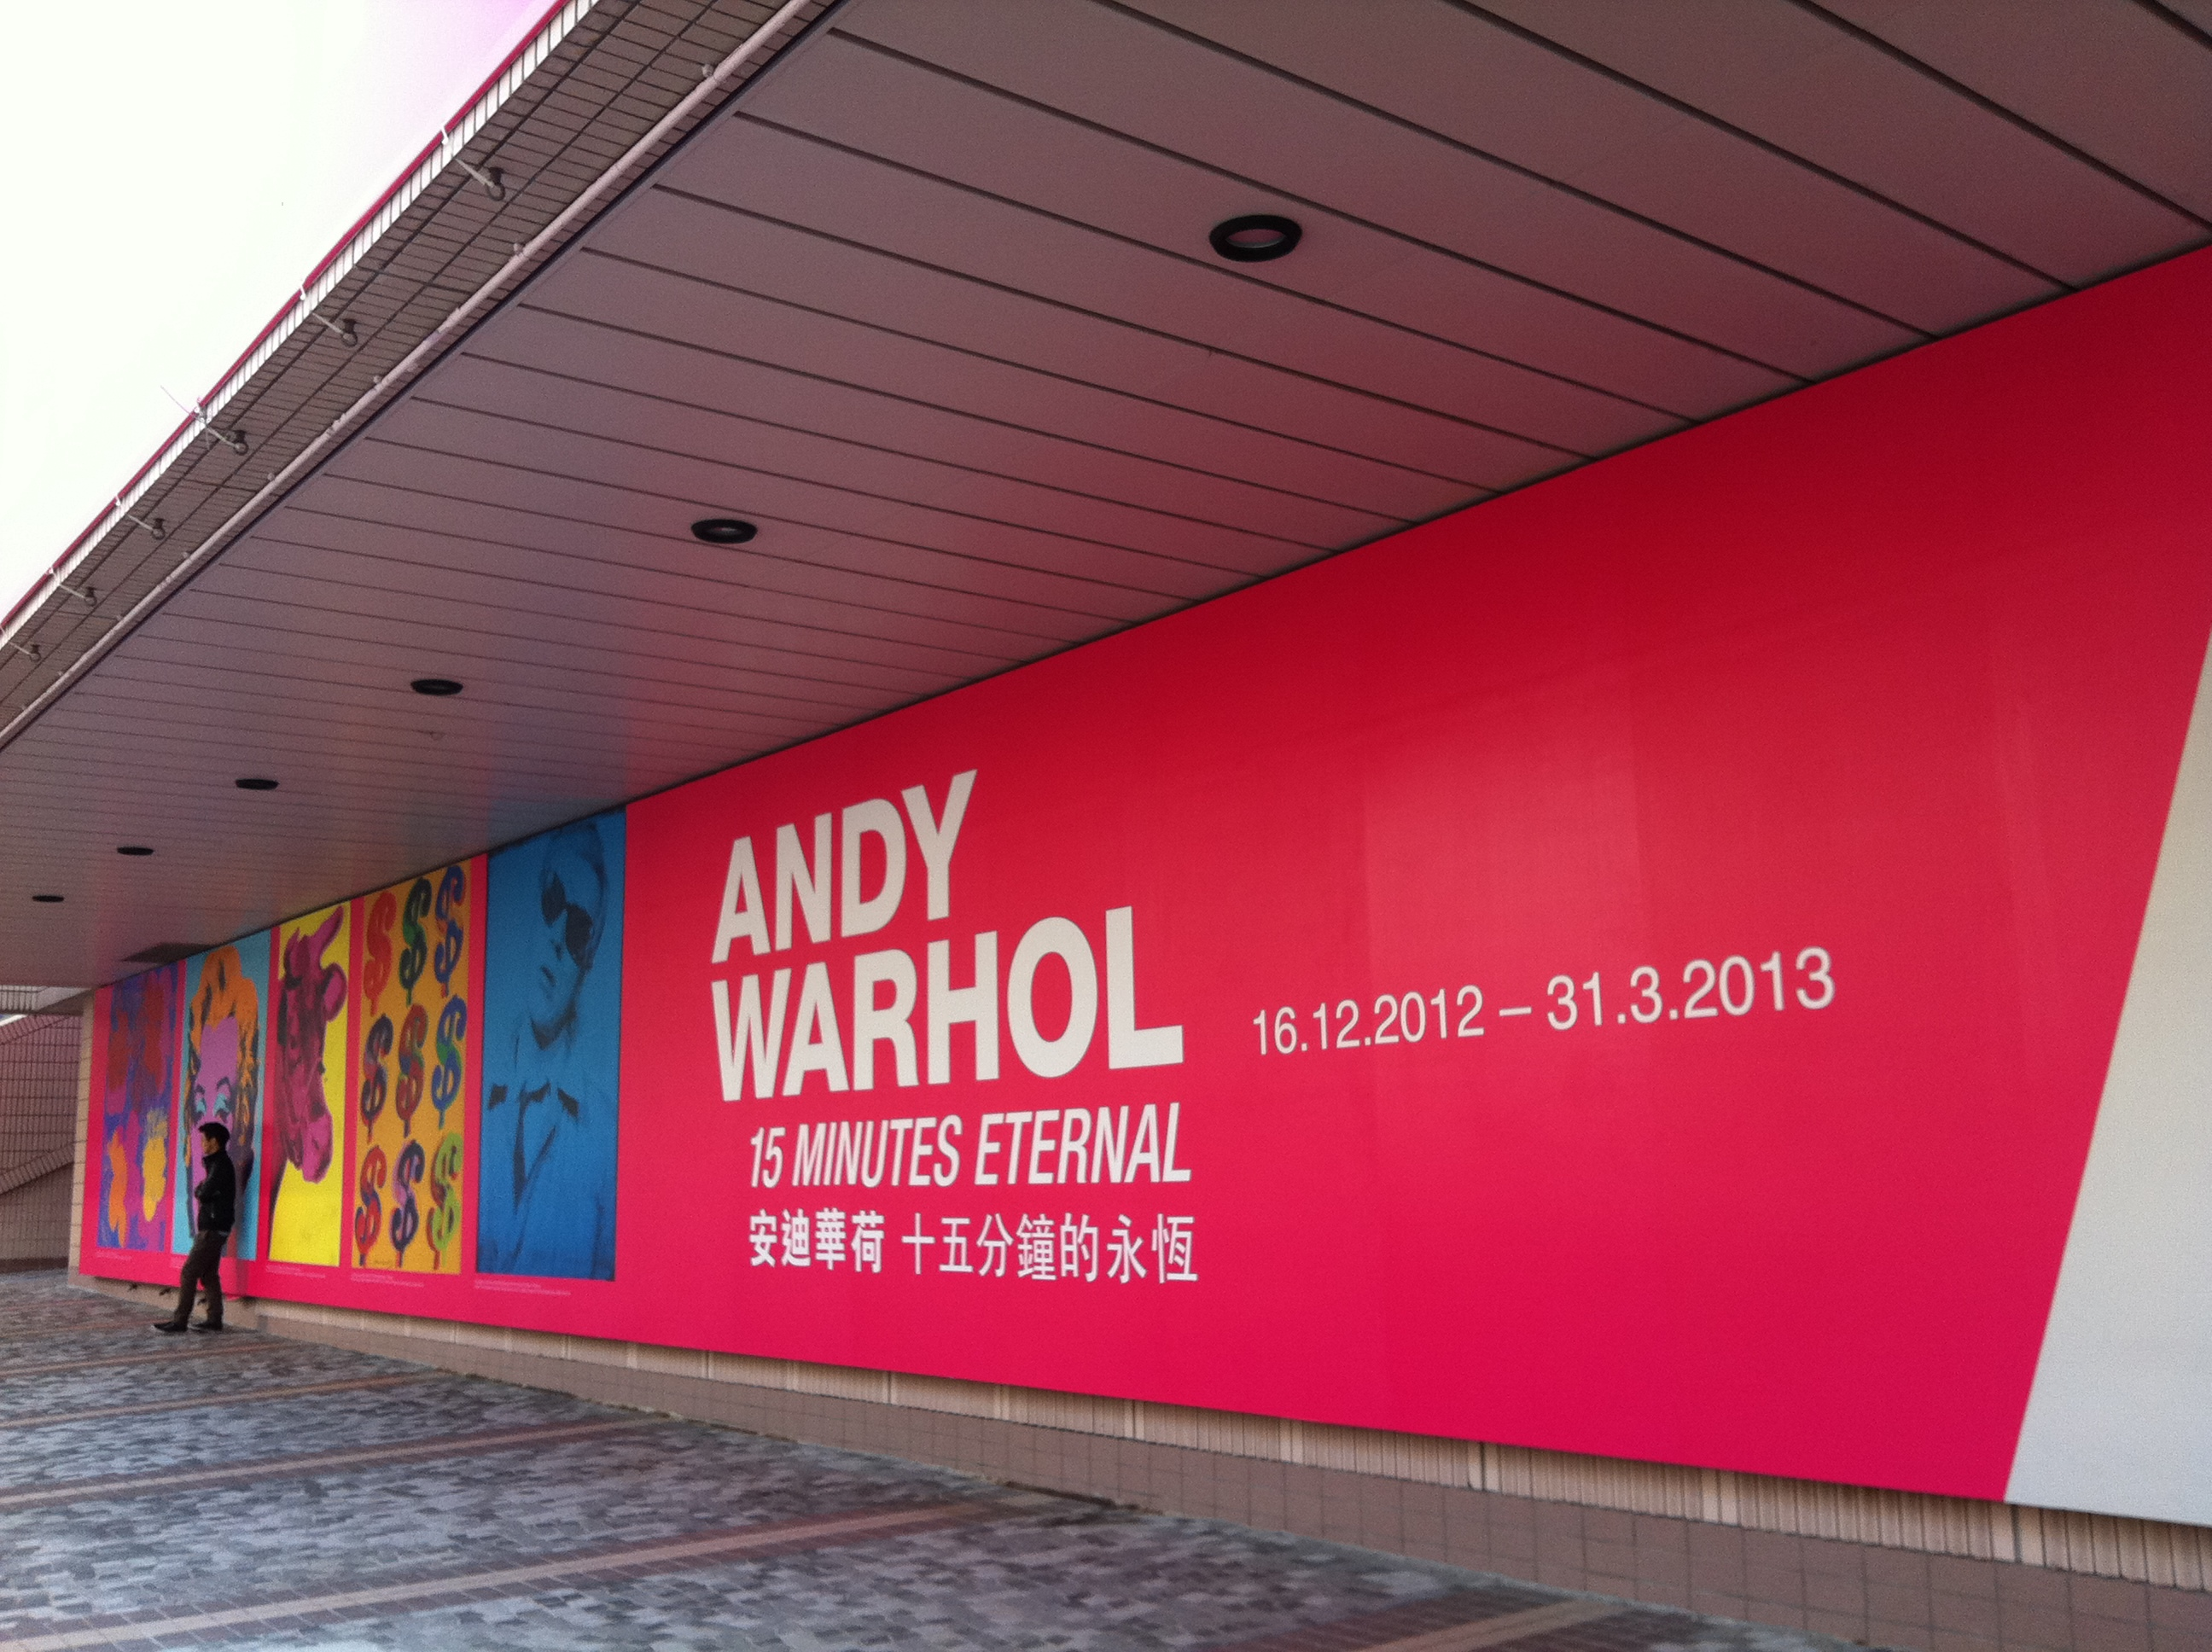 Warhol Amsterdam Andy Warhol 15 Minutes Eternal Exhibition Hong Kong